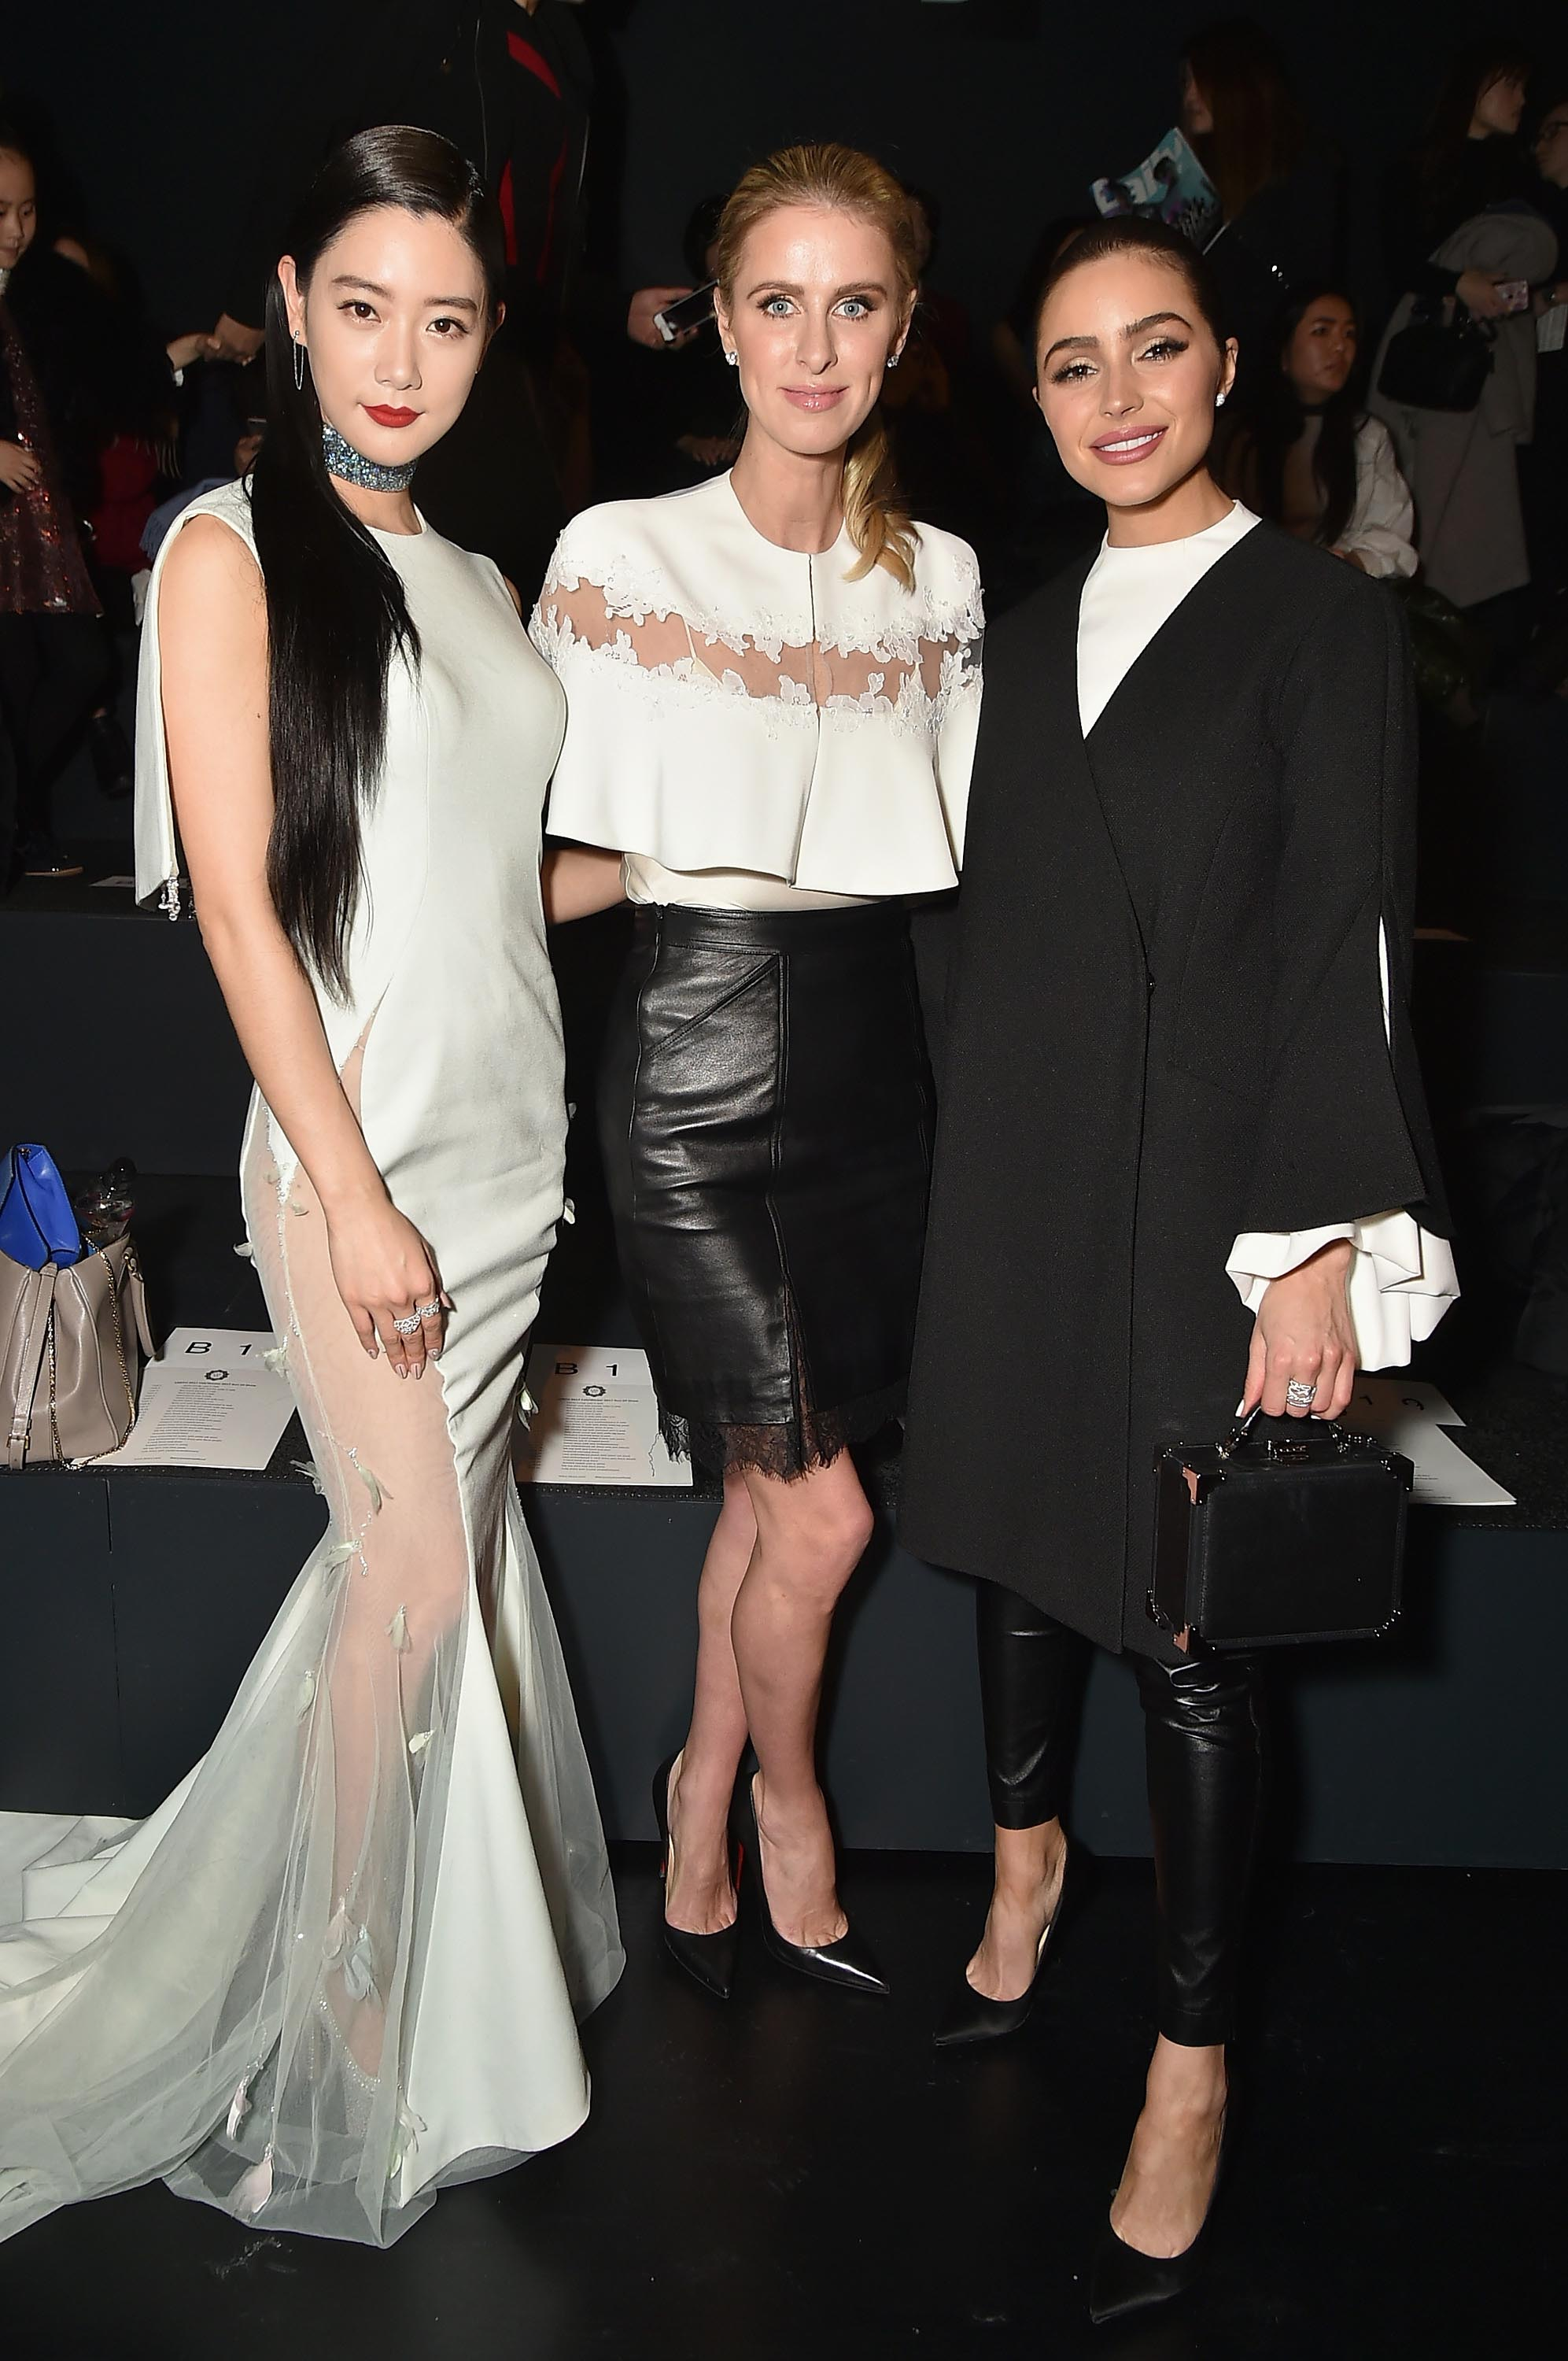 Olivia Culpo attends the Lanyu collection Front Row